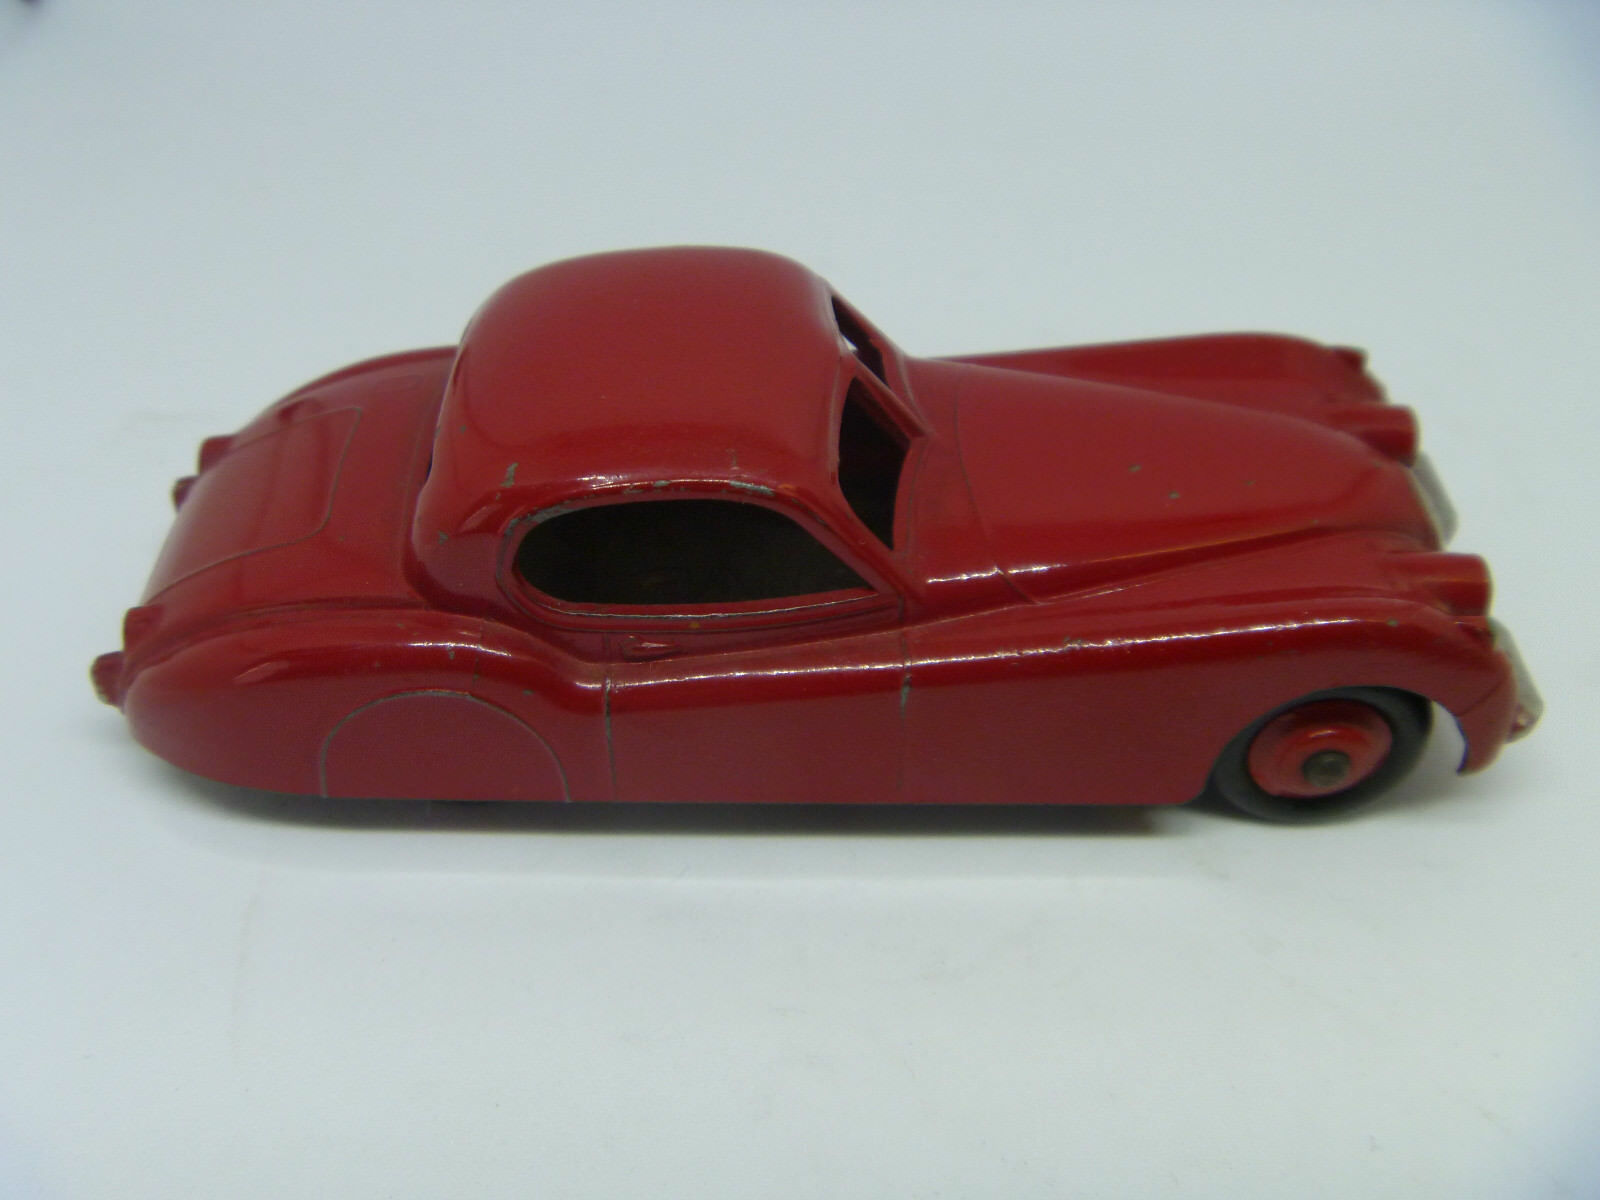 DINKY TOYS 157 JAGUAR XK120 COUPE RED NEAR MINT ORIGINAL ORIGINAL ORIGINAL 2b8762